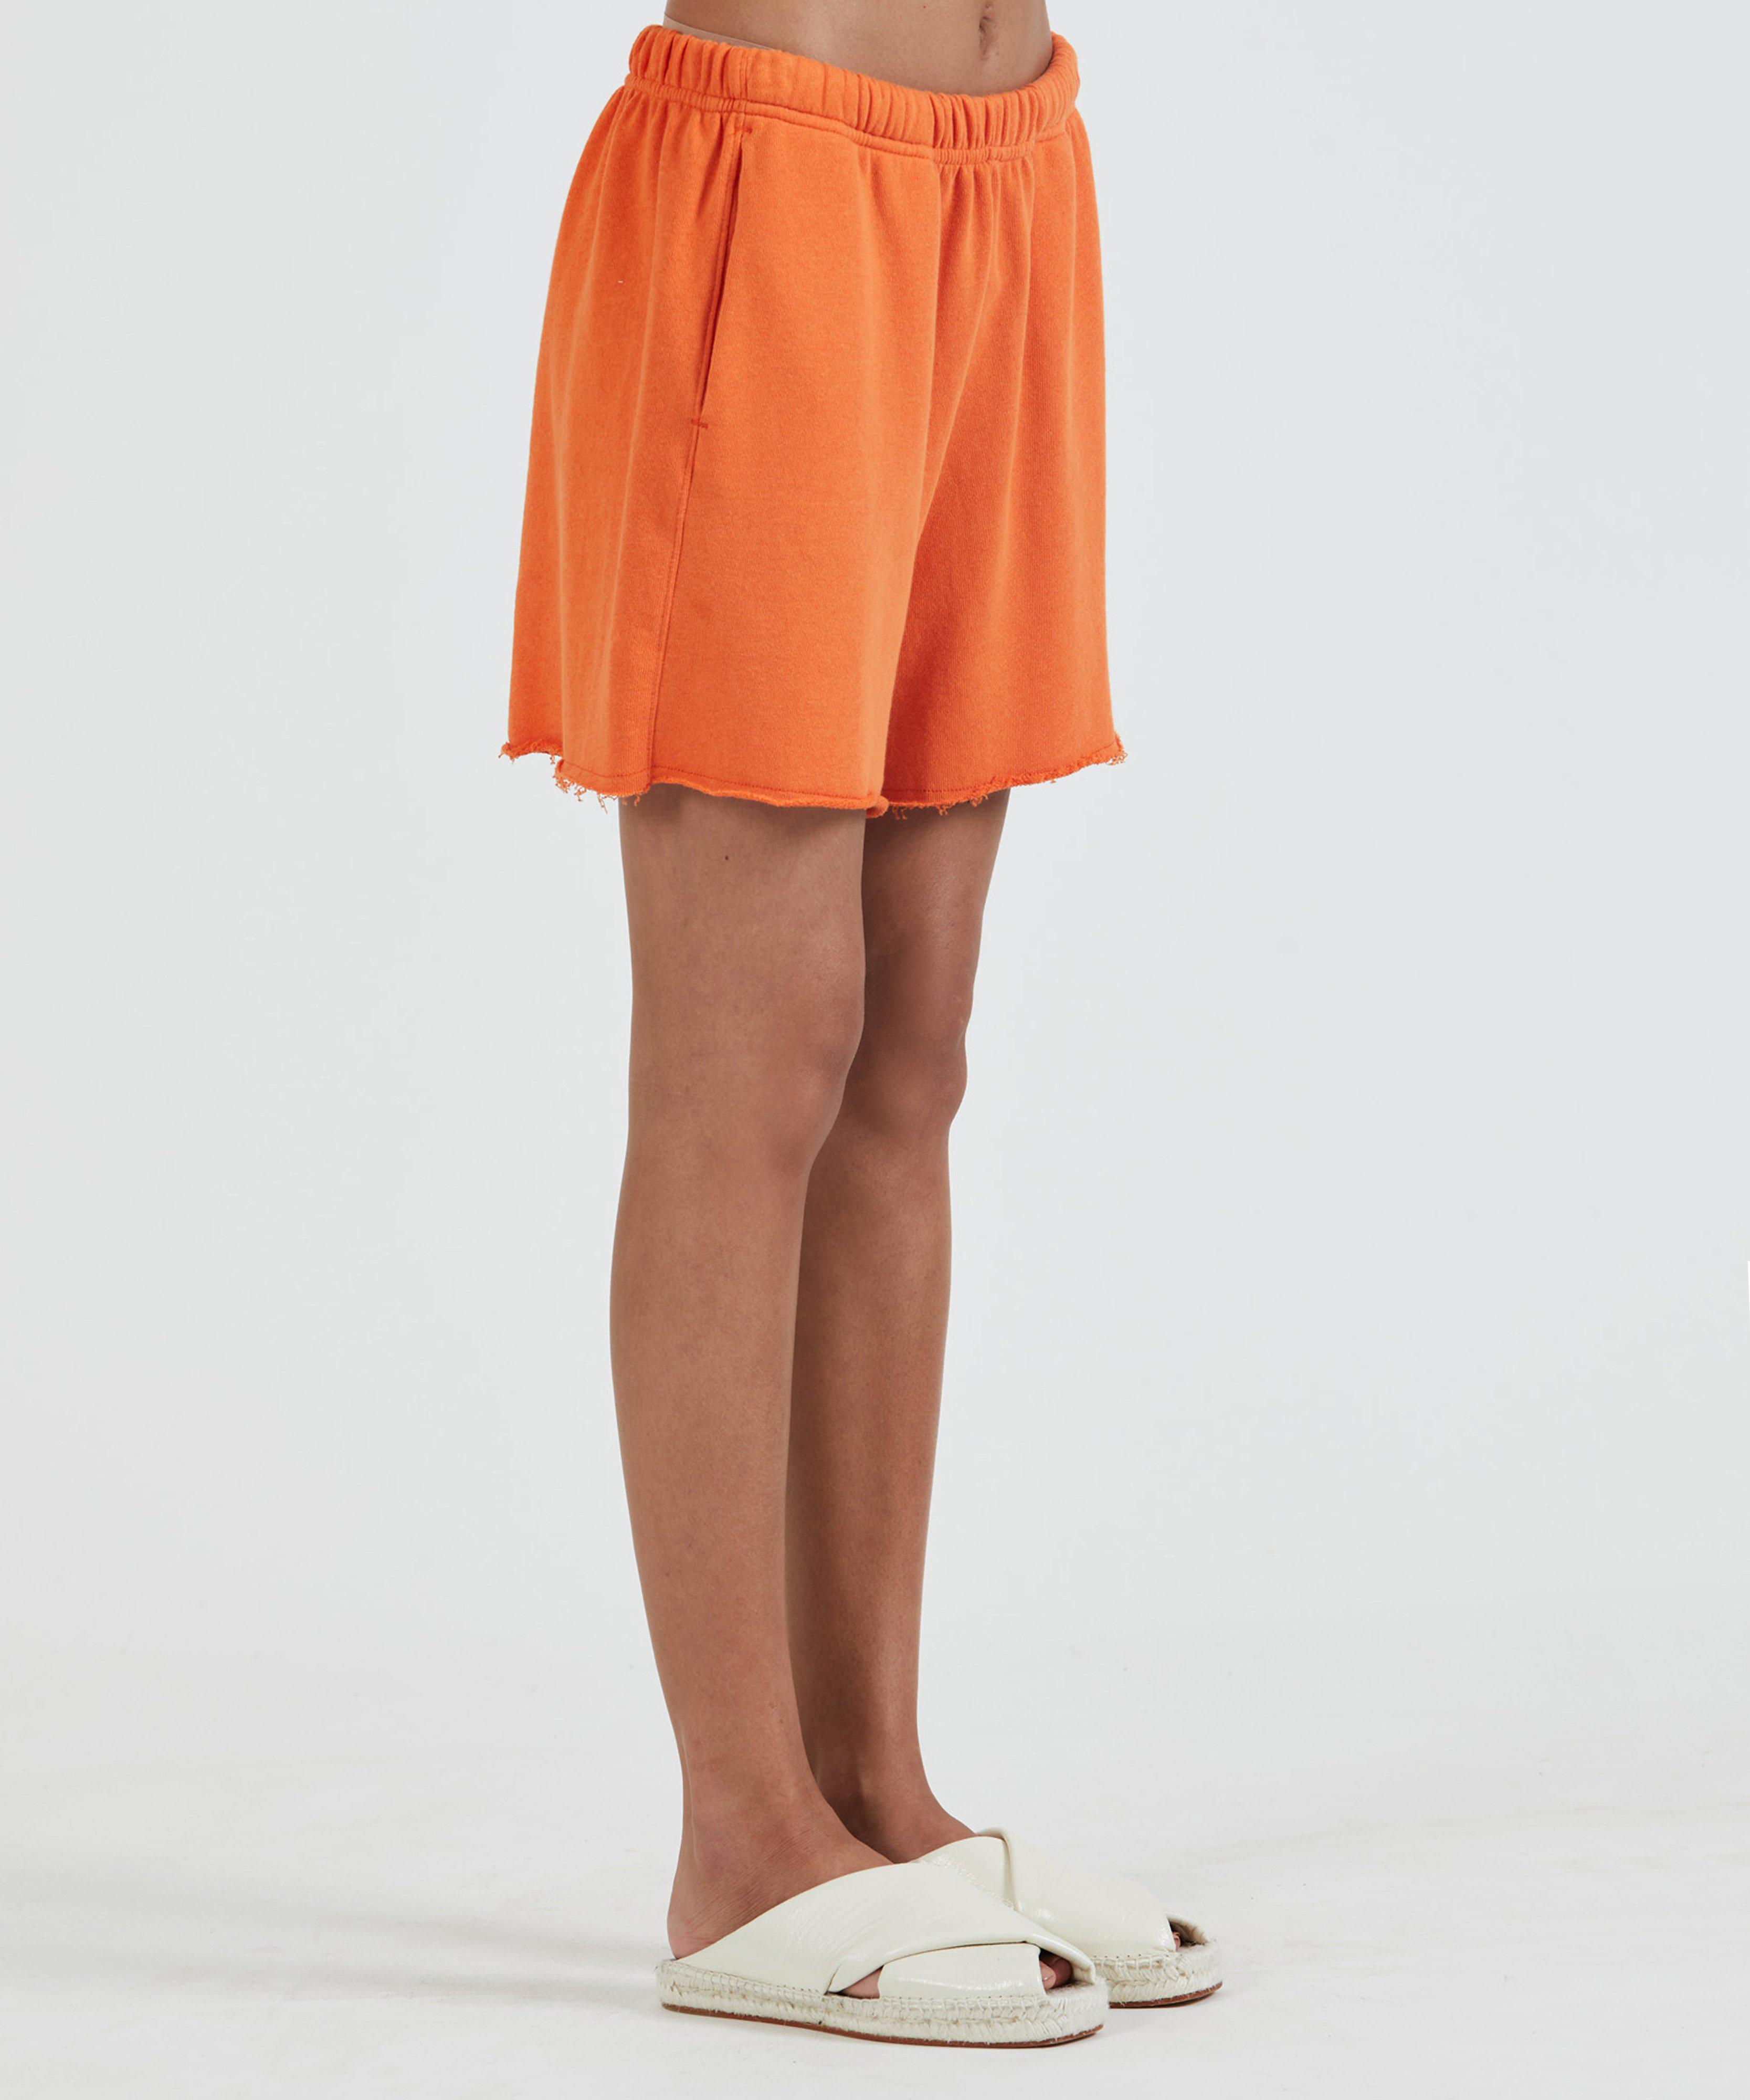 French Terry Pull-On Short - Clementine 1